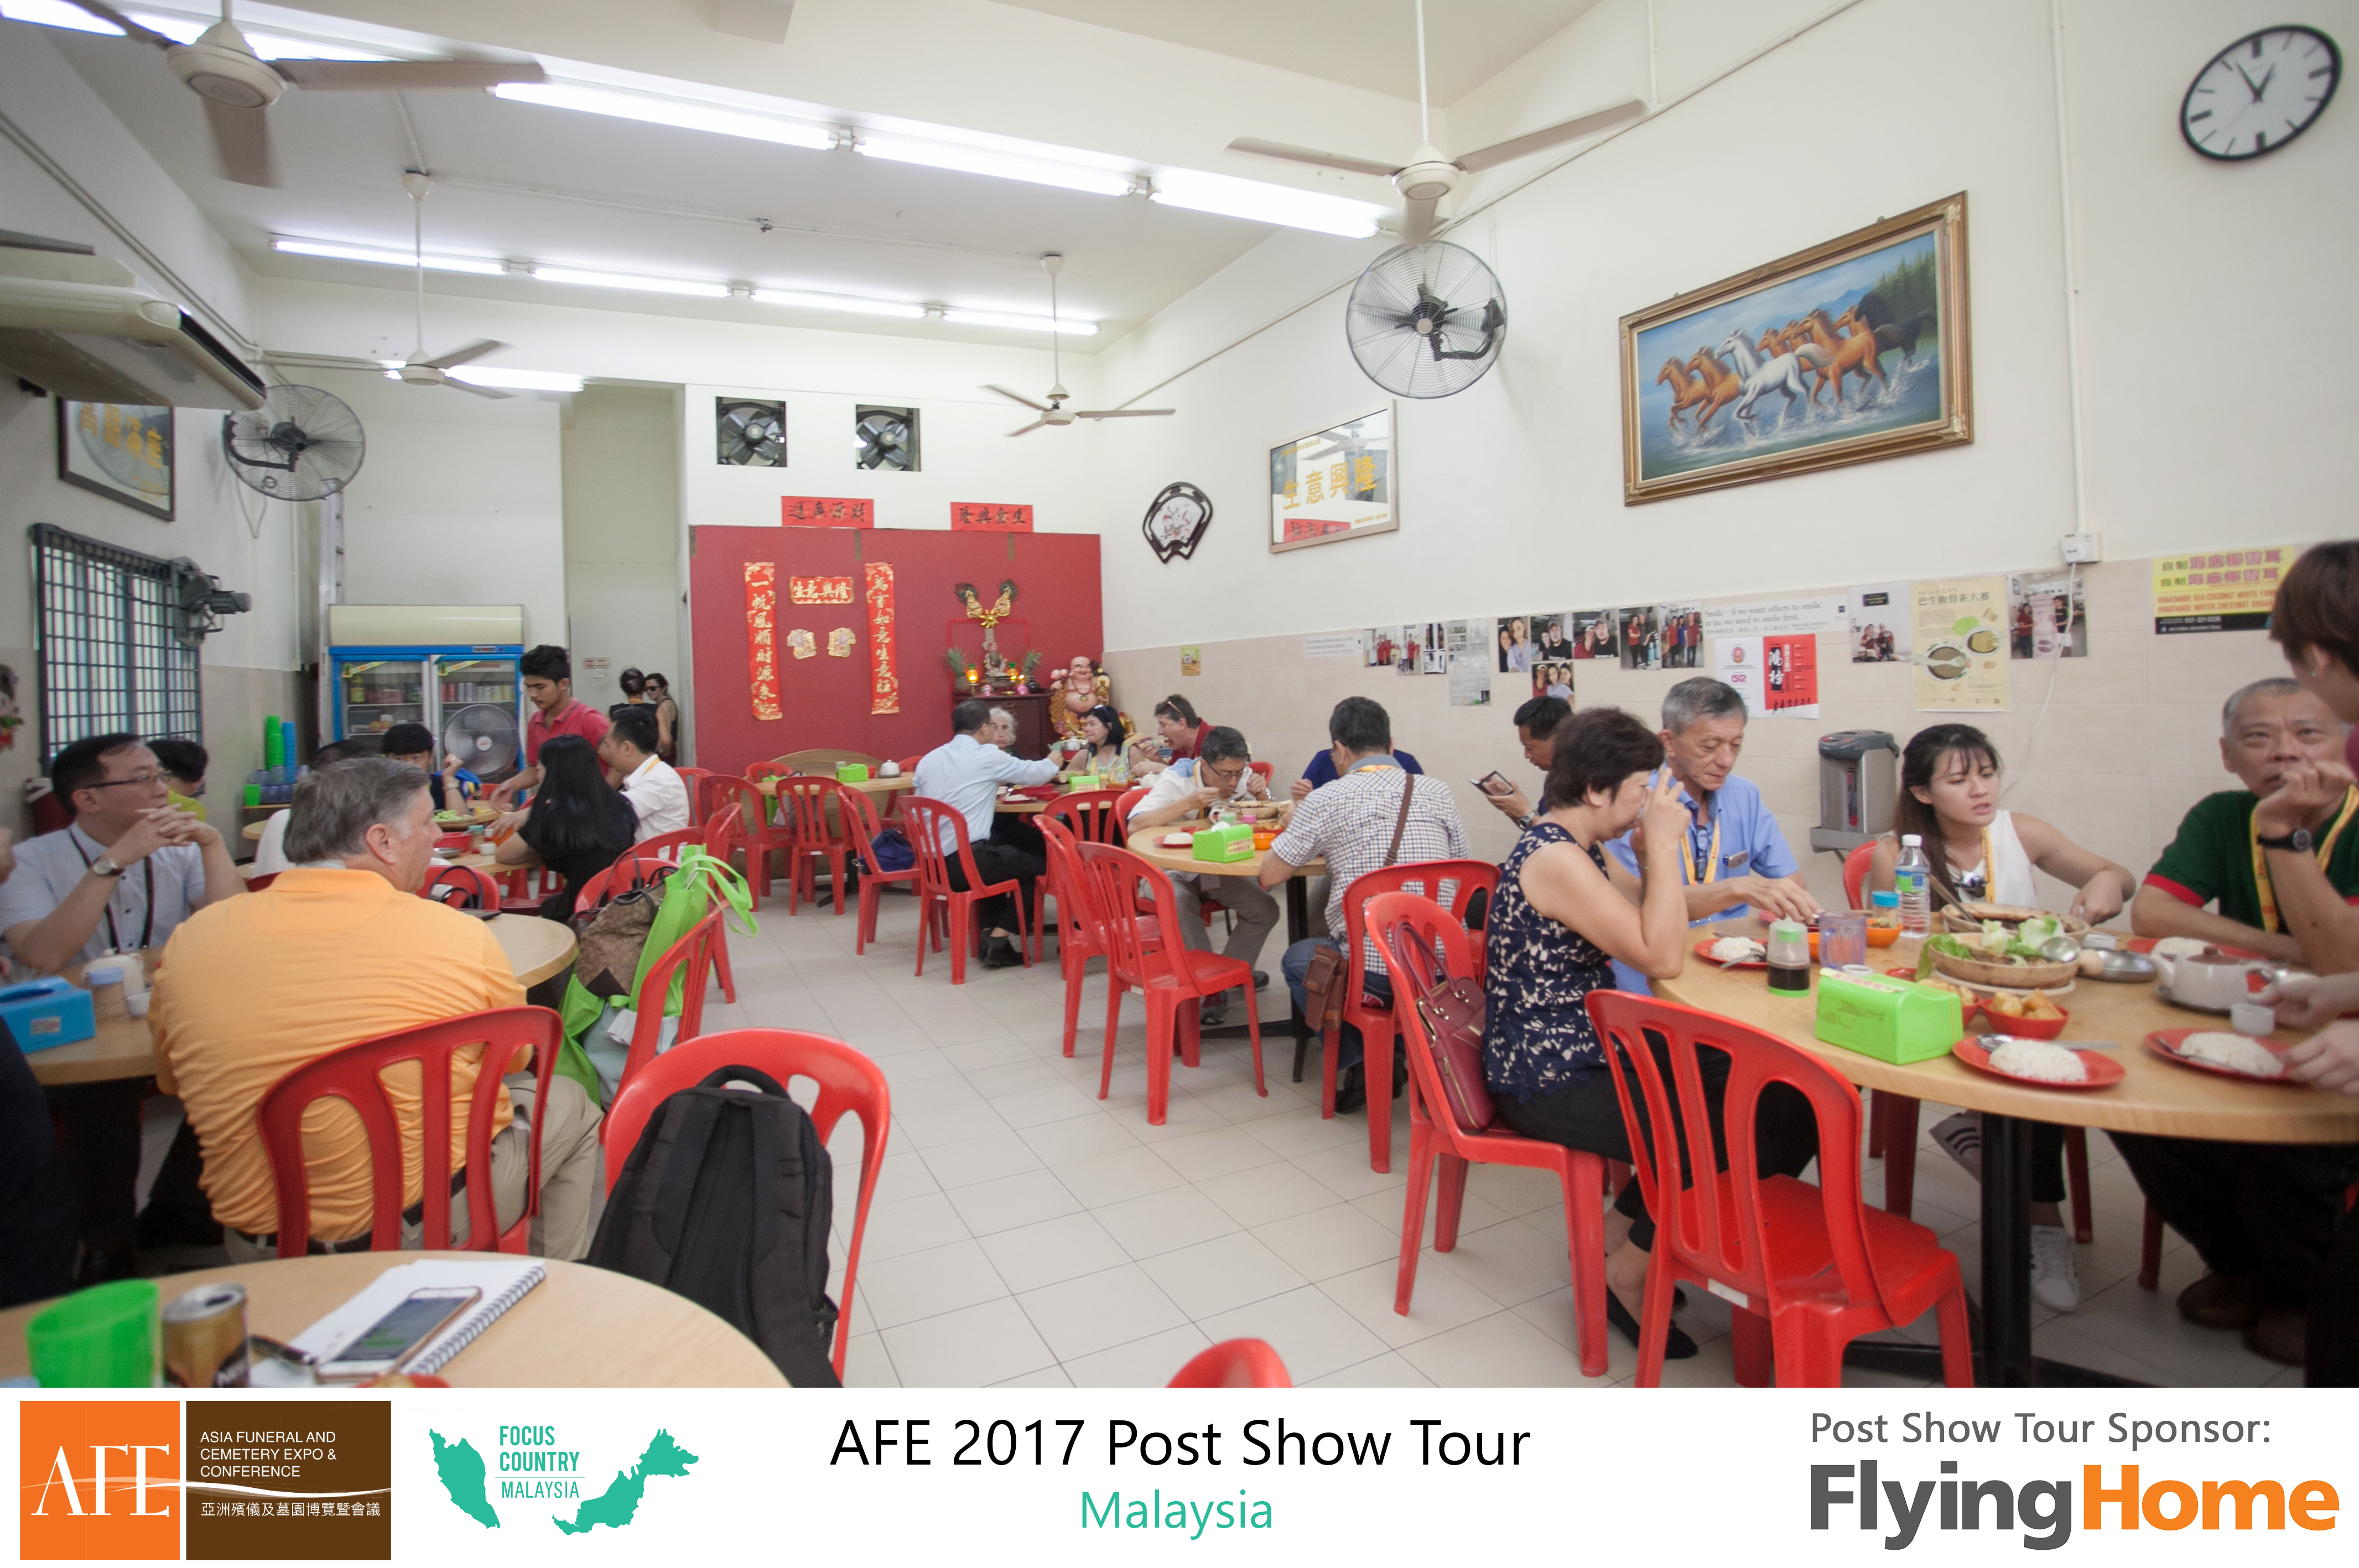 AFE Post Show Tour 2017 Day 4 - 26